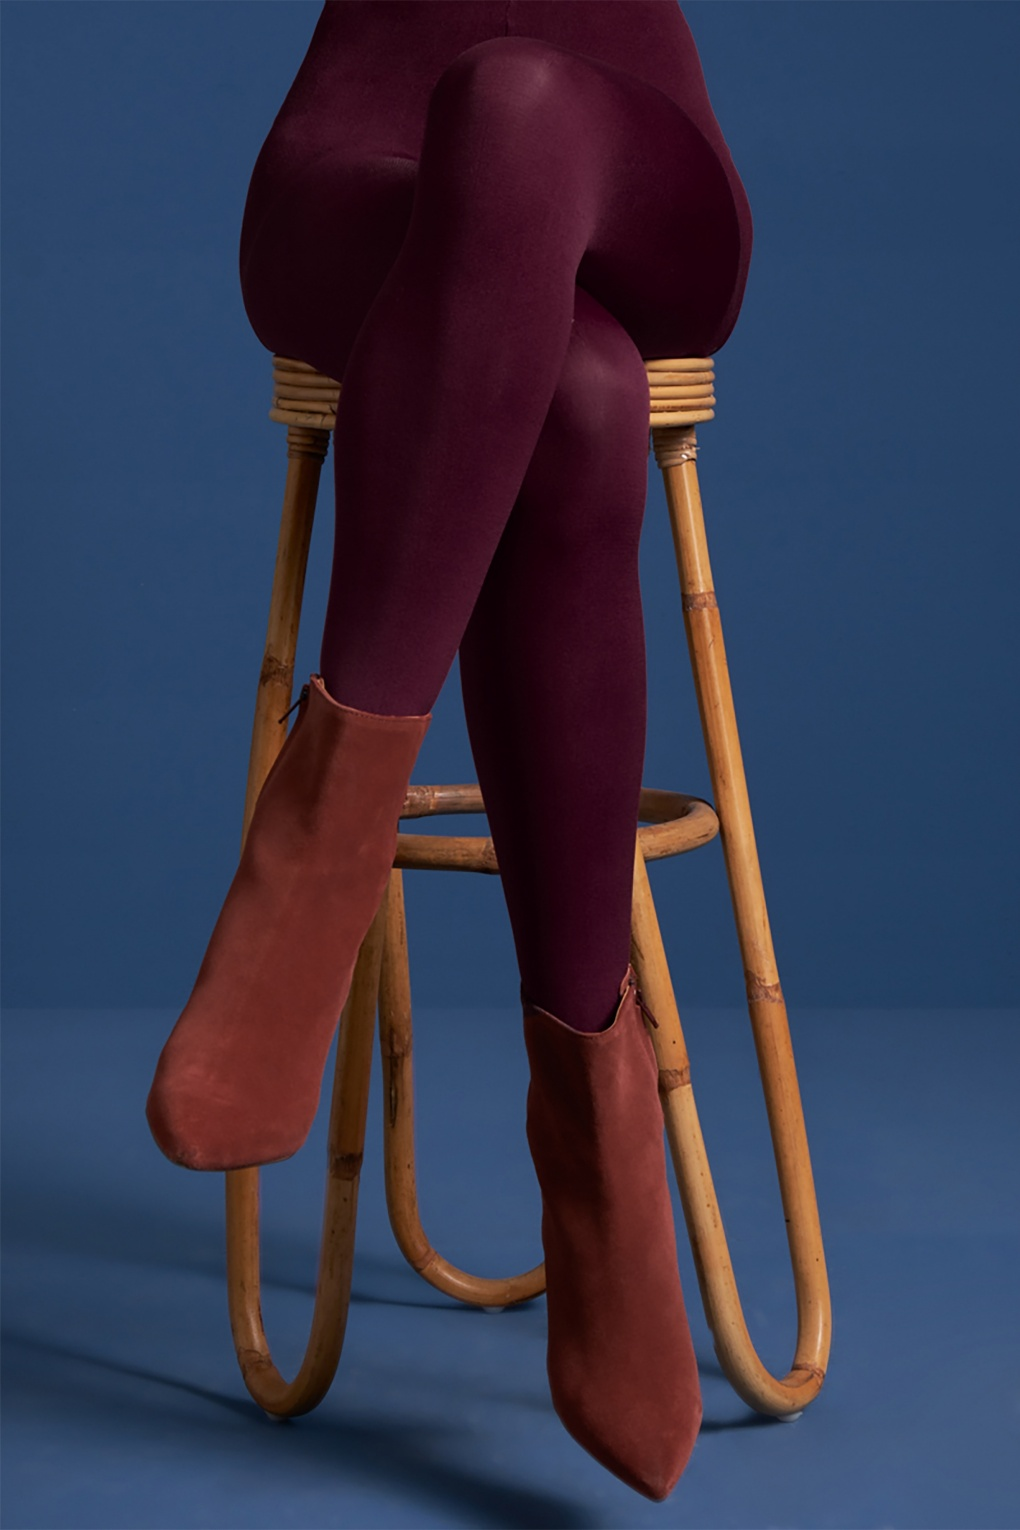 1960s Tights, Stockings, Panty Hose, Knee High Socks 60s Solid Tights in Porto Red £12.86 AT vintagedancer.com